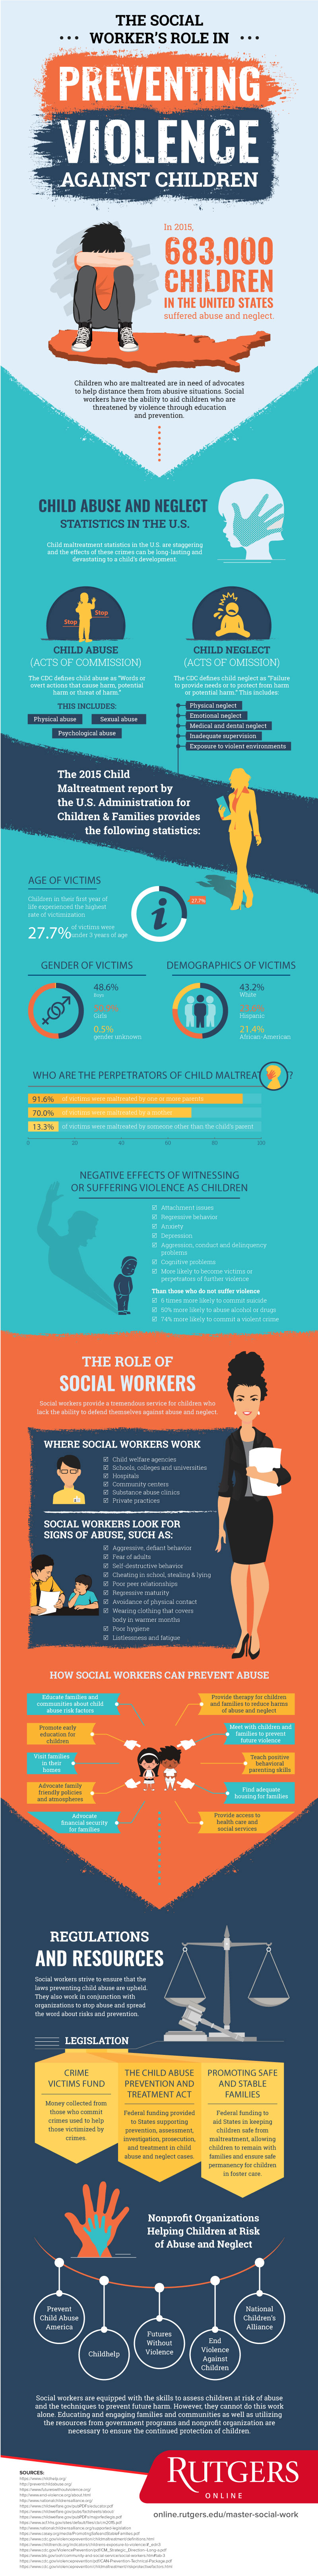 The-social-workers-role-in-preventing-violence-against-children